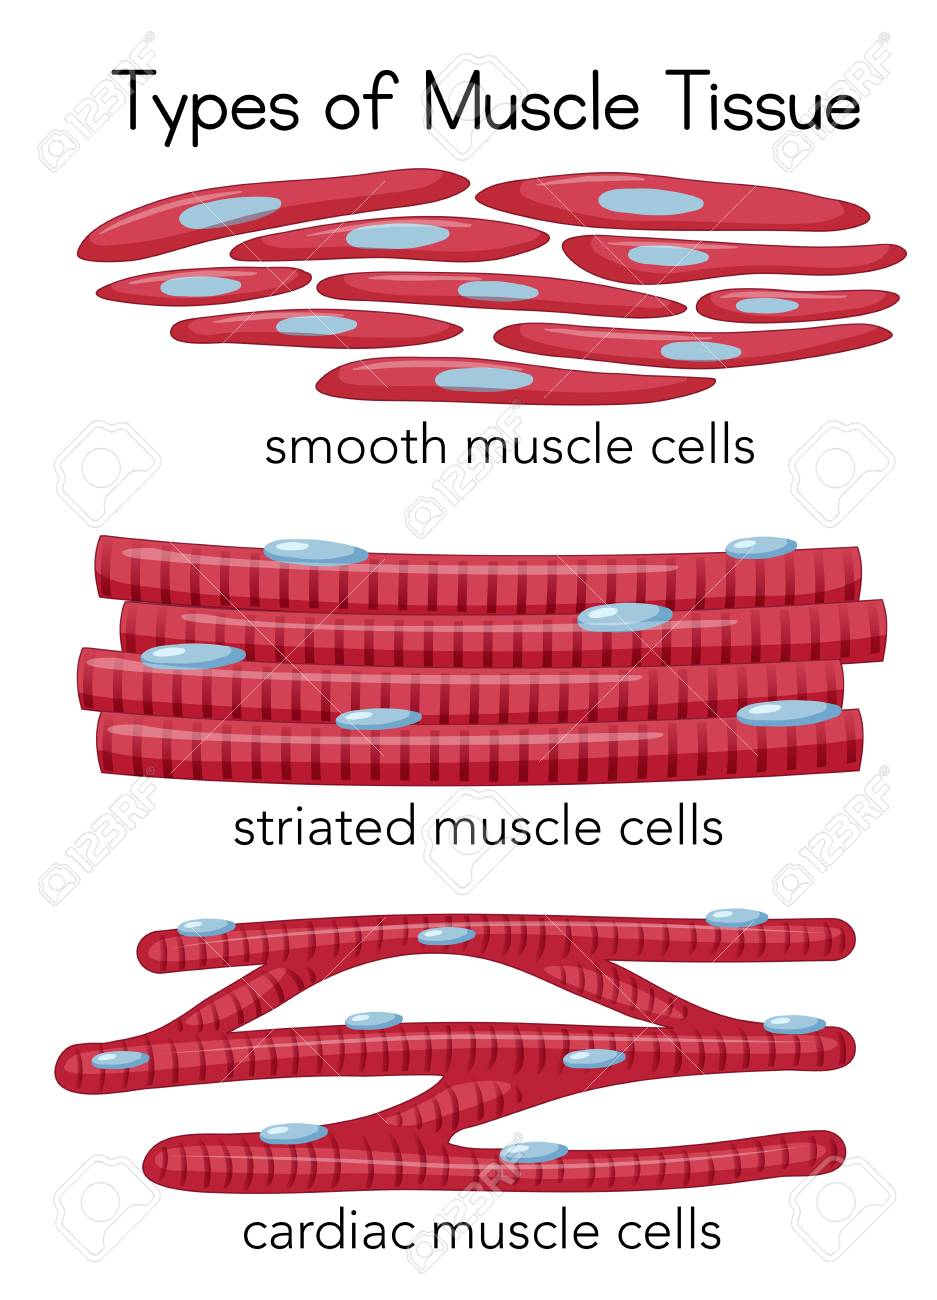 Types of Muscle Tissue illustration - 115004028